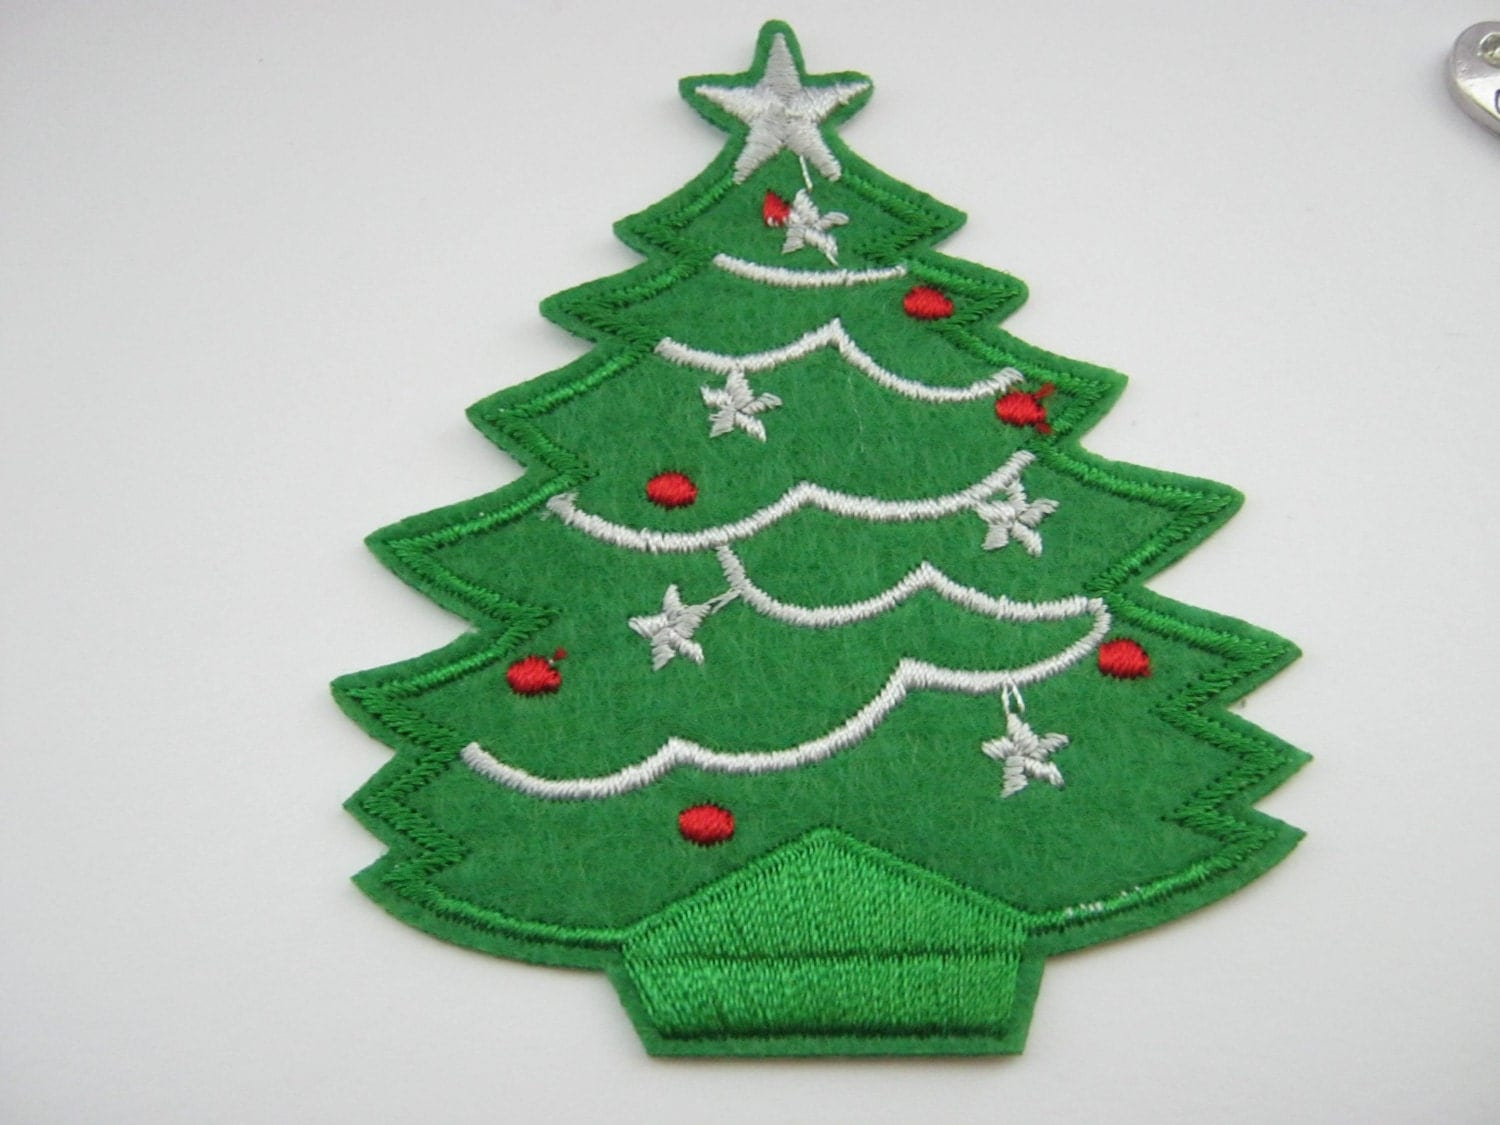 Christmas Tree Patch Iron On Appliques 8cm 3 Inches